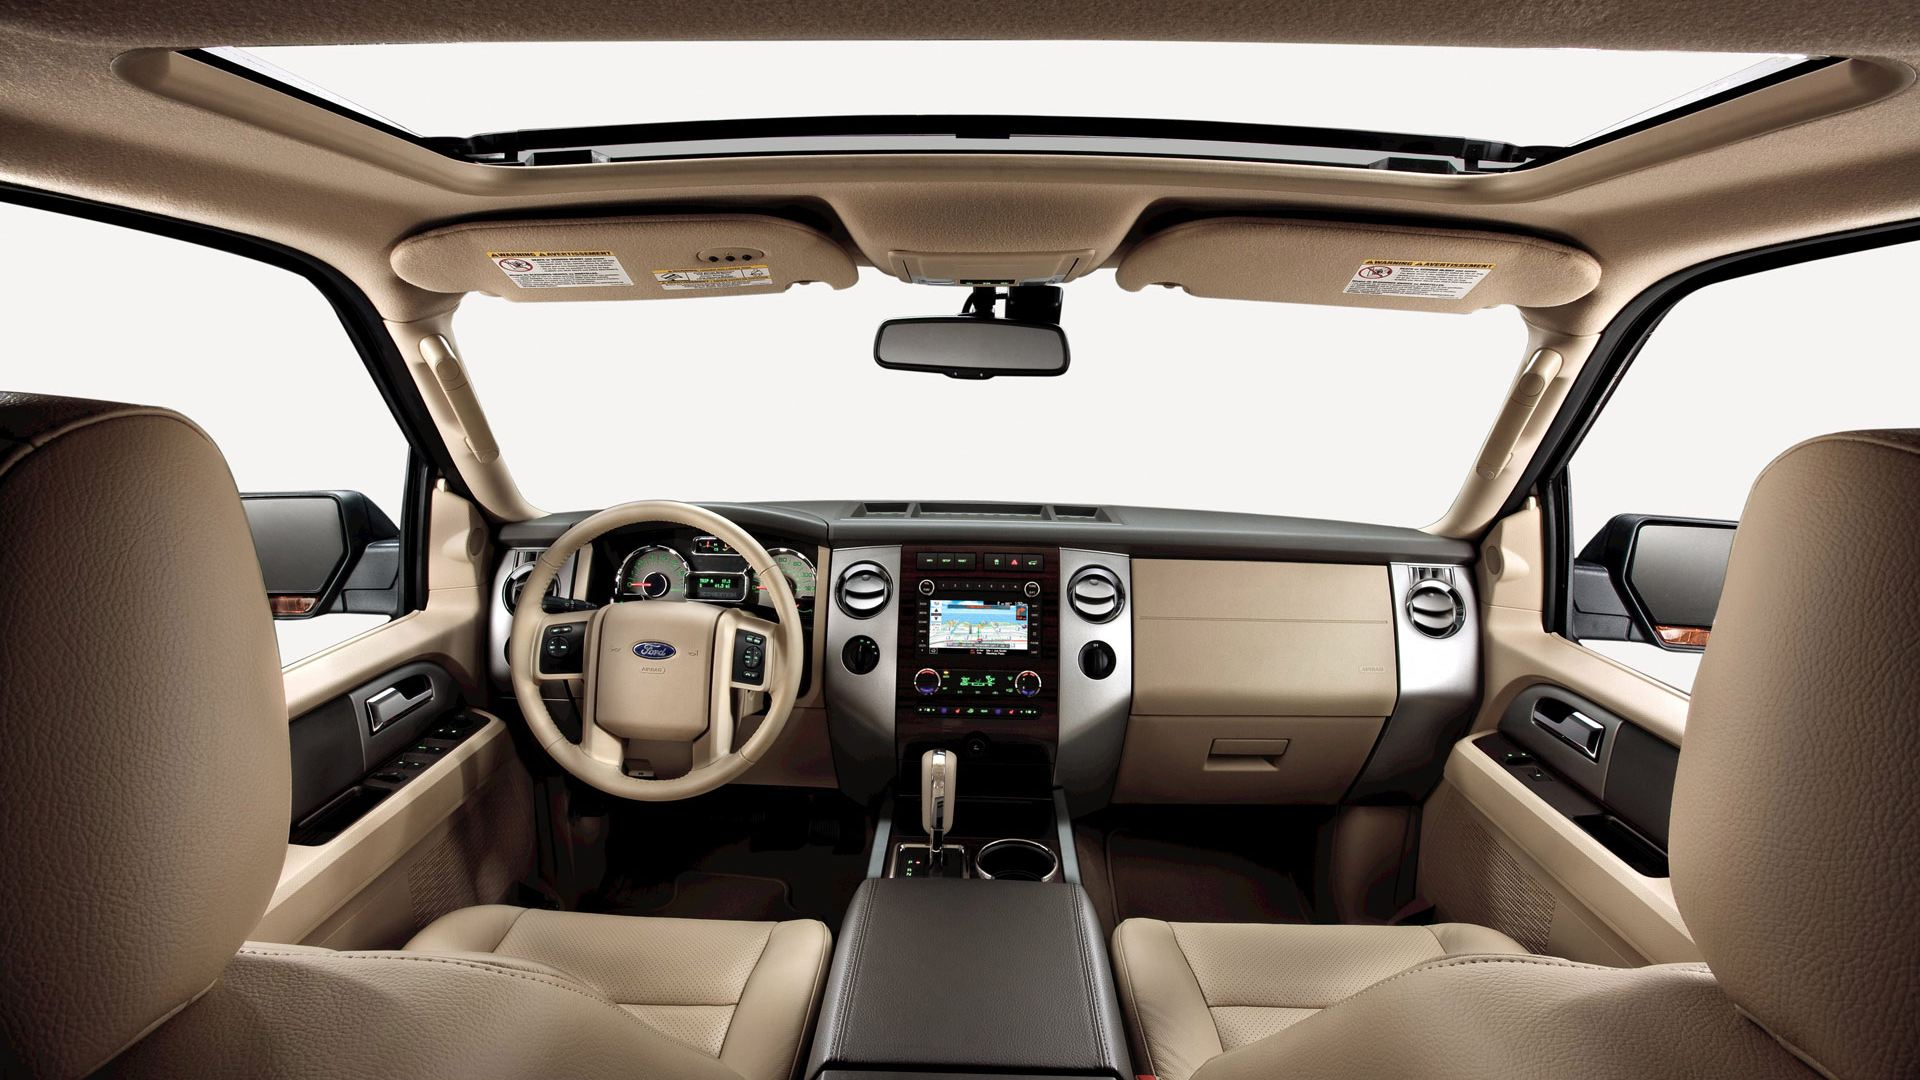 2011 Ford Expedition Interior